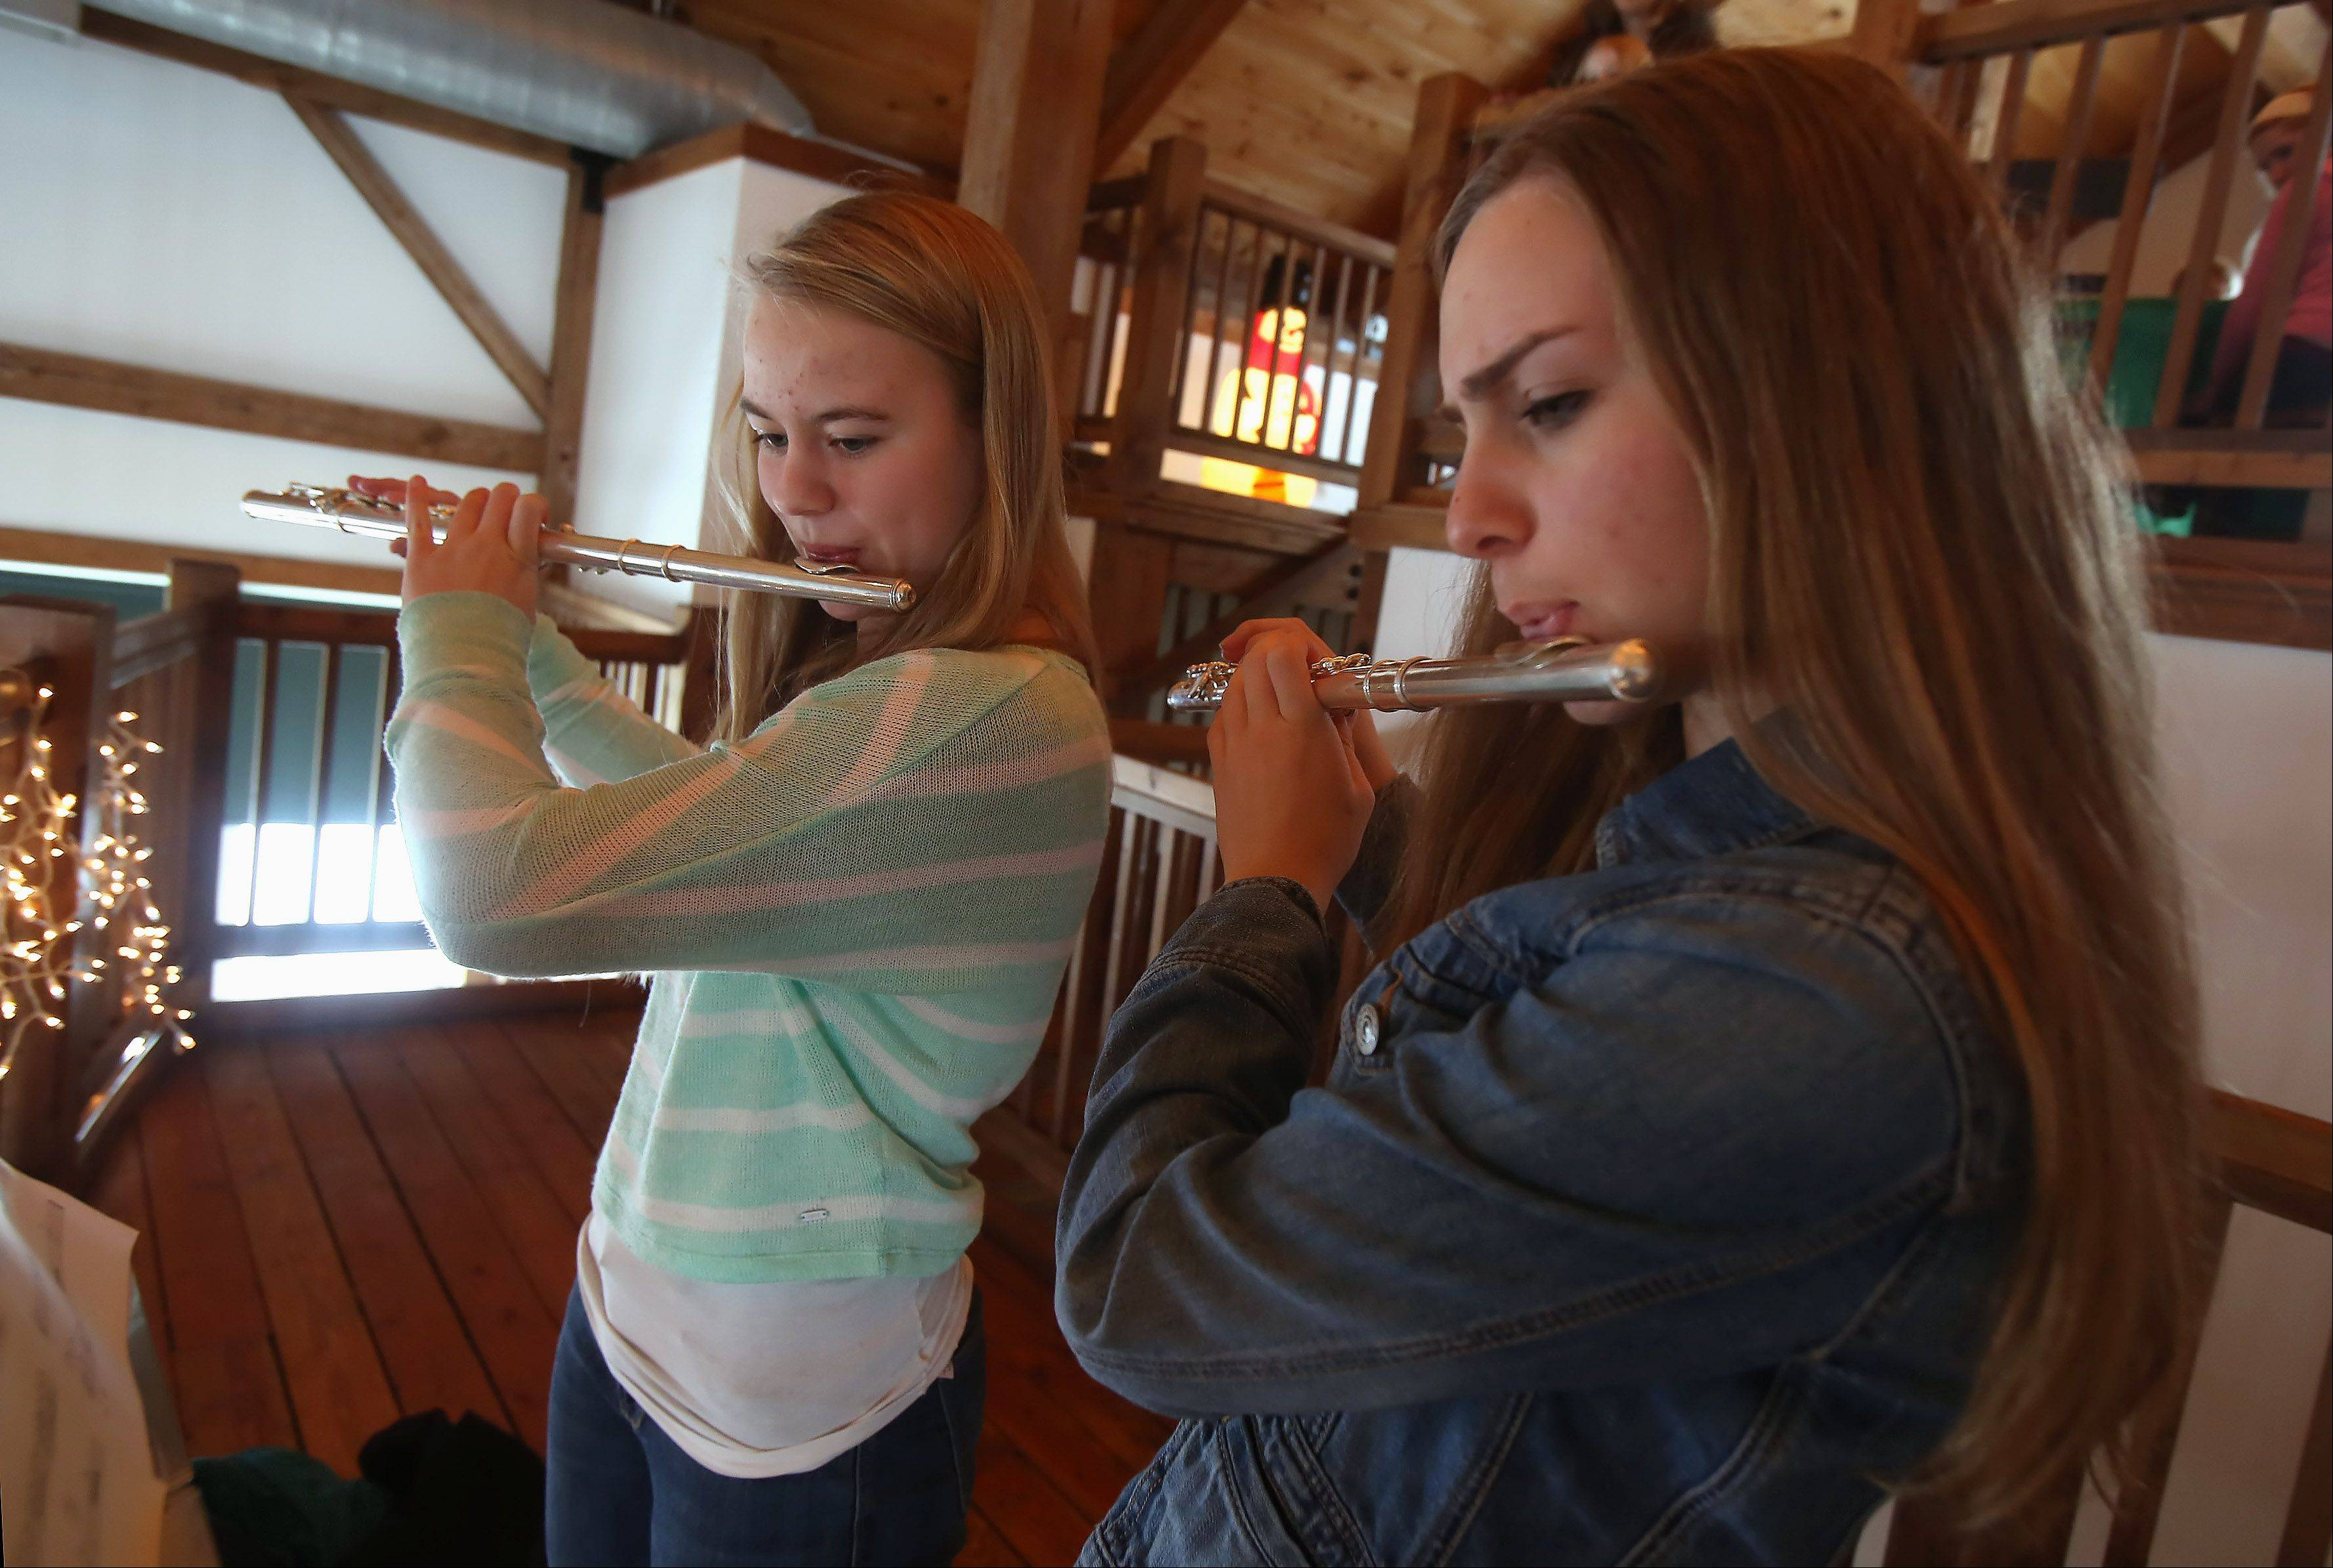 Sarah Johns, left, and Alyssa Remshak, both 16, play flutes as they entertain visitors with holiday music during the 18th annual Prairie Crossing Cookie Walk and Bake Sale Sunday at Byron Colby Barn in Grayslake. Visitors could choose from thousands of homemade cookies as well as handmade gifts and unique items from local artisans and merchants.